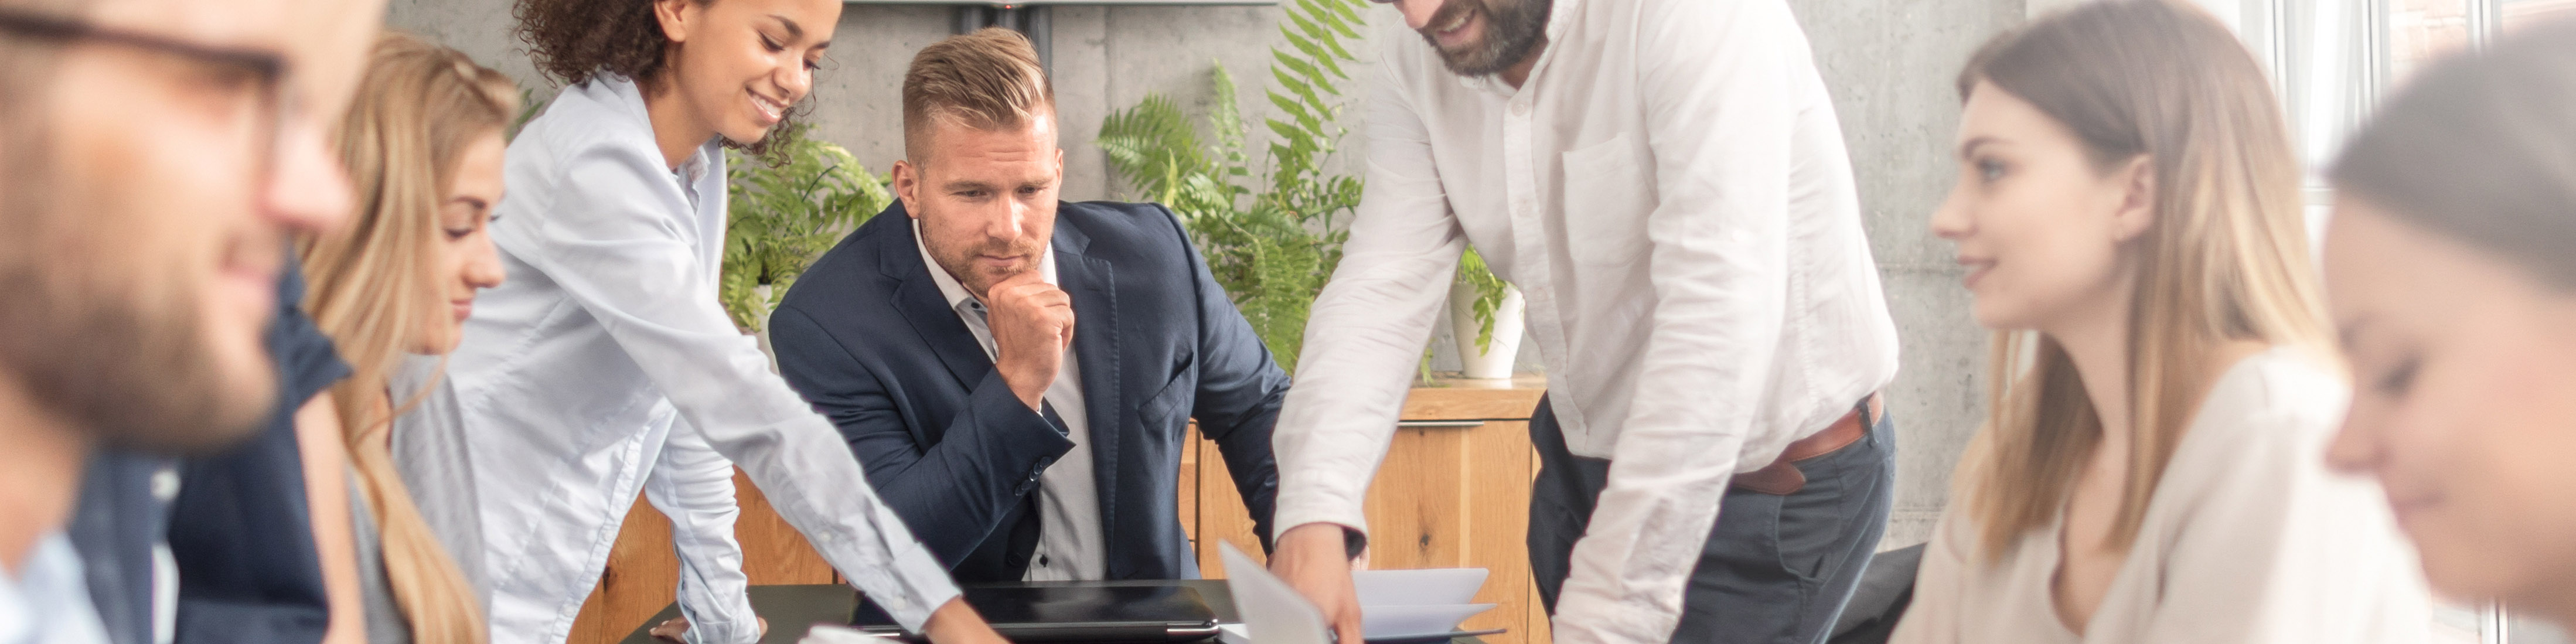 10 Essentials Steps to Post-Merger Corporate Compliance